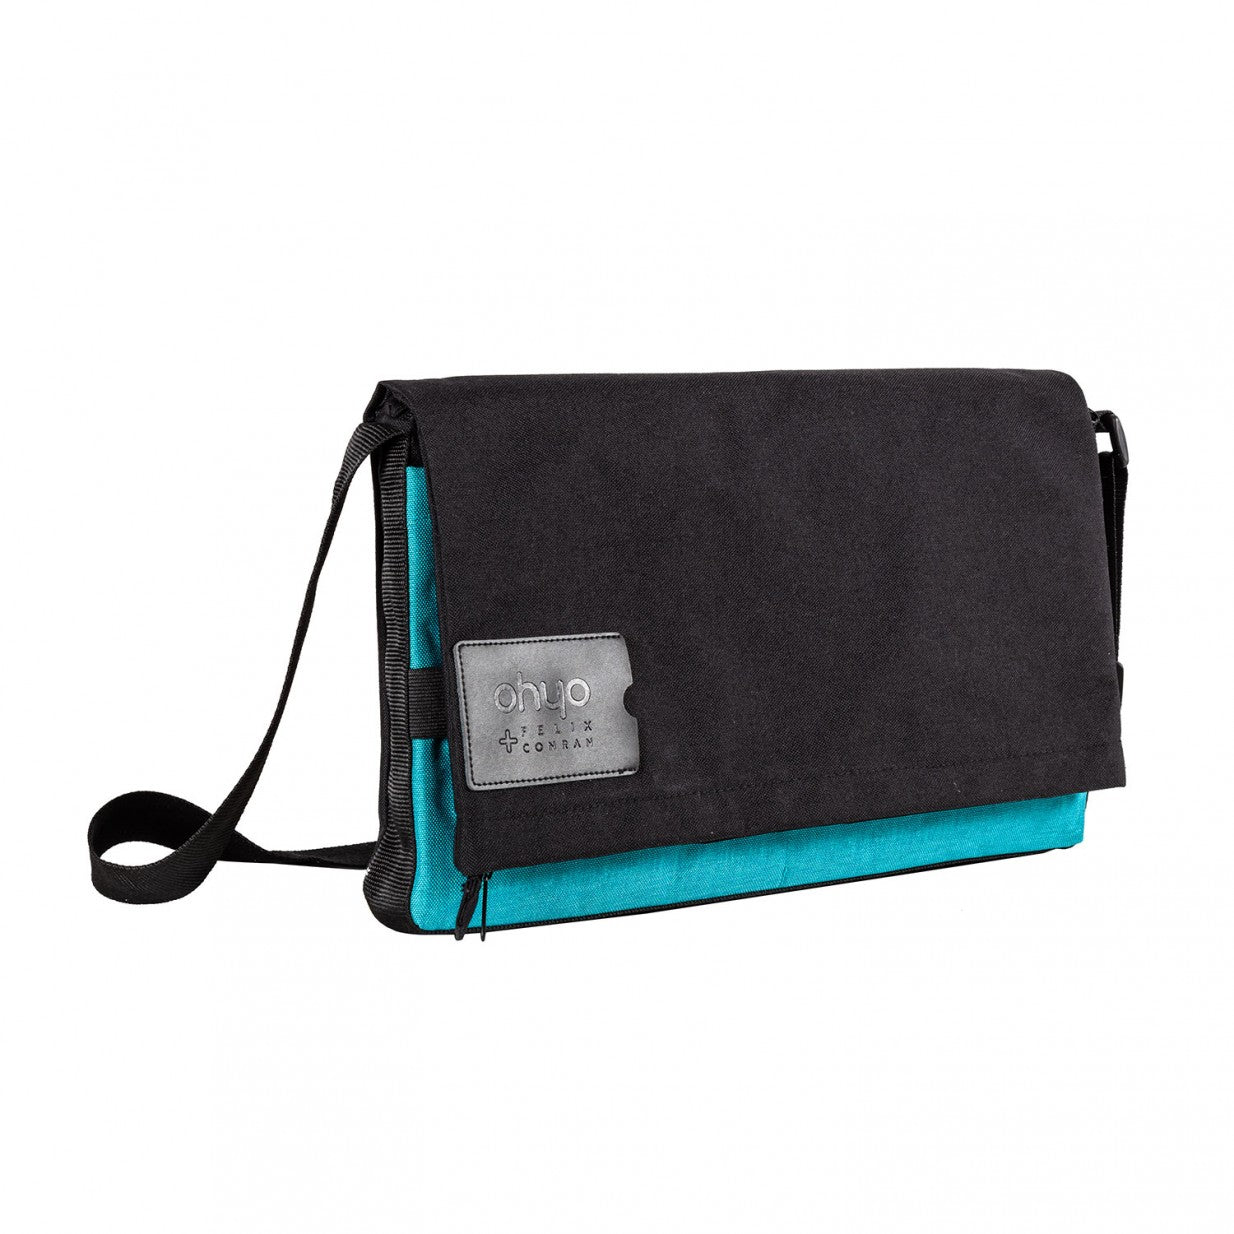 Ohyo 2Bag by Felix Conran (Teal)